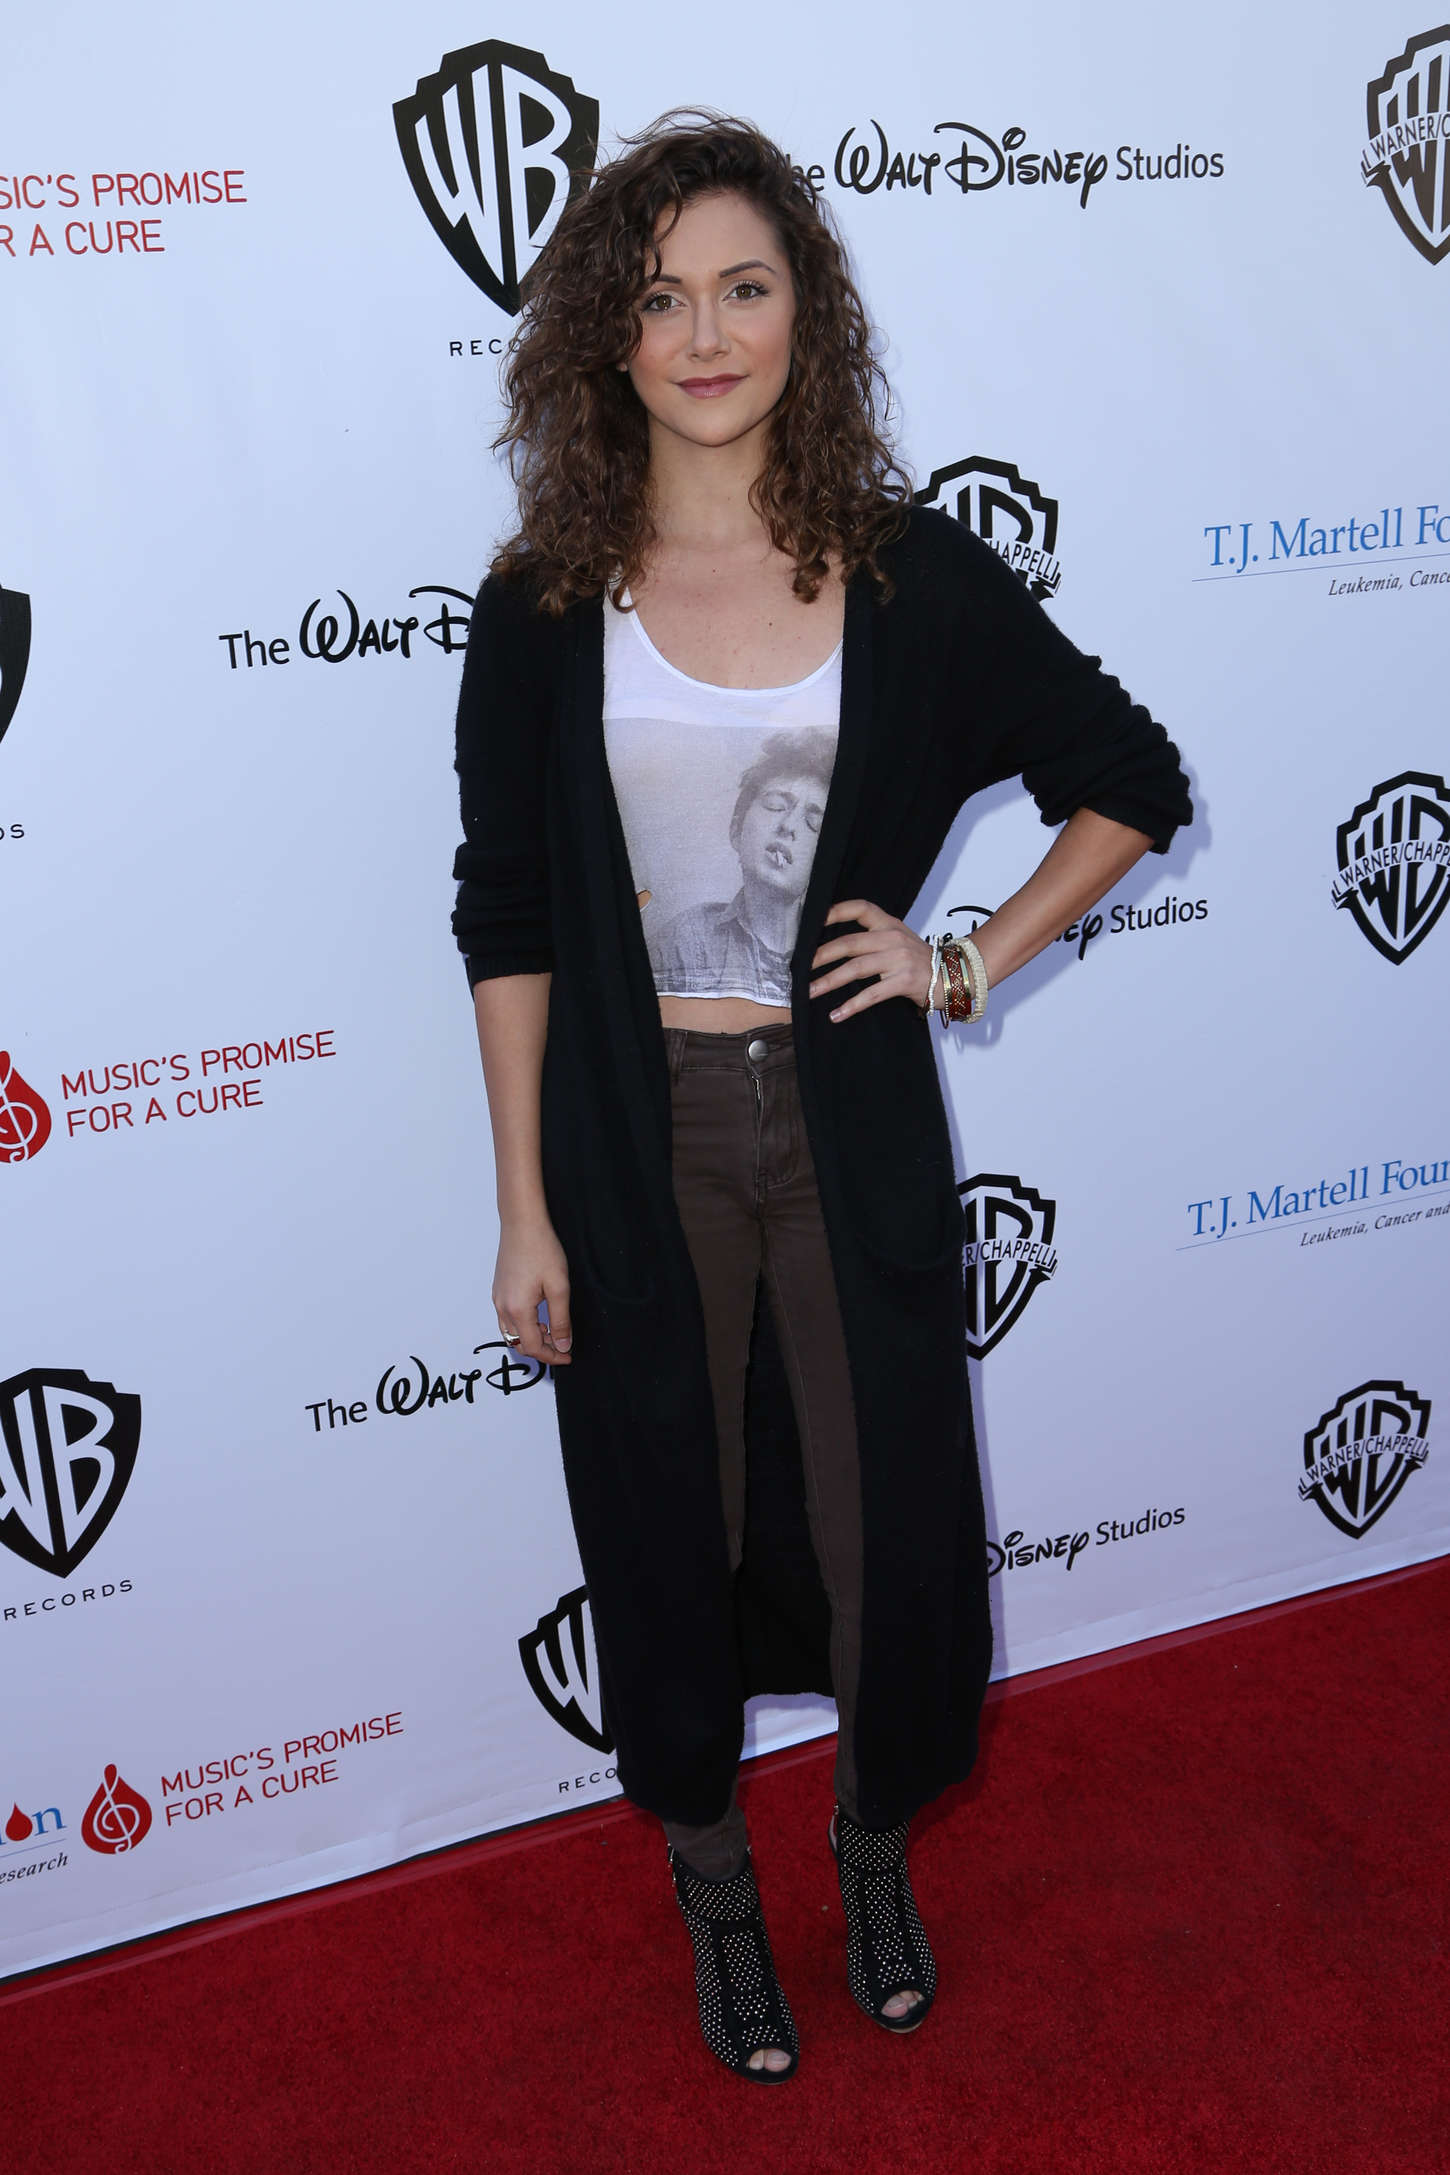 Alyson Stoner T.J. Martell Foundation Family Day in Studio City